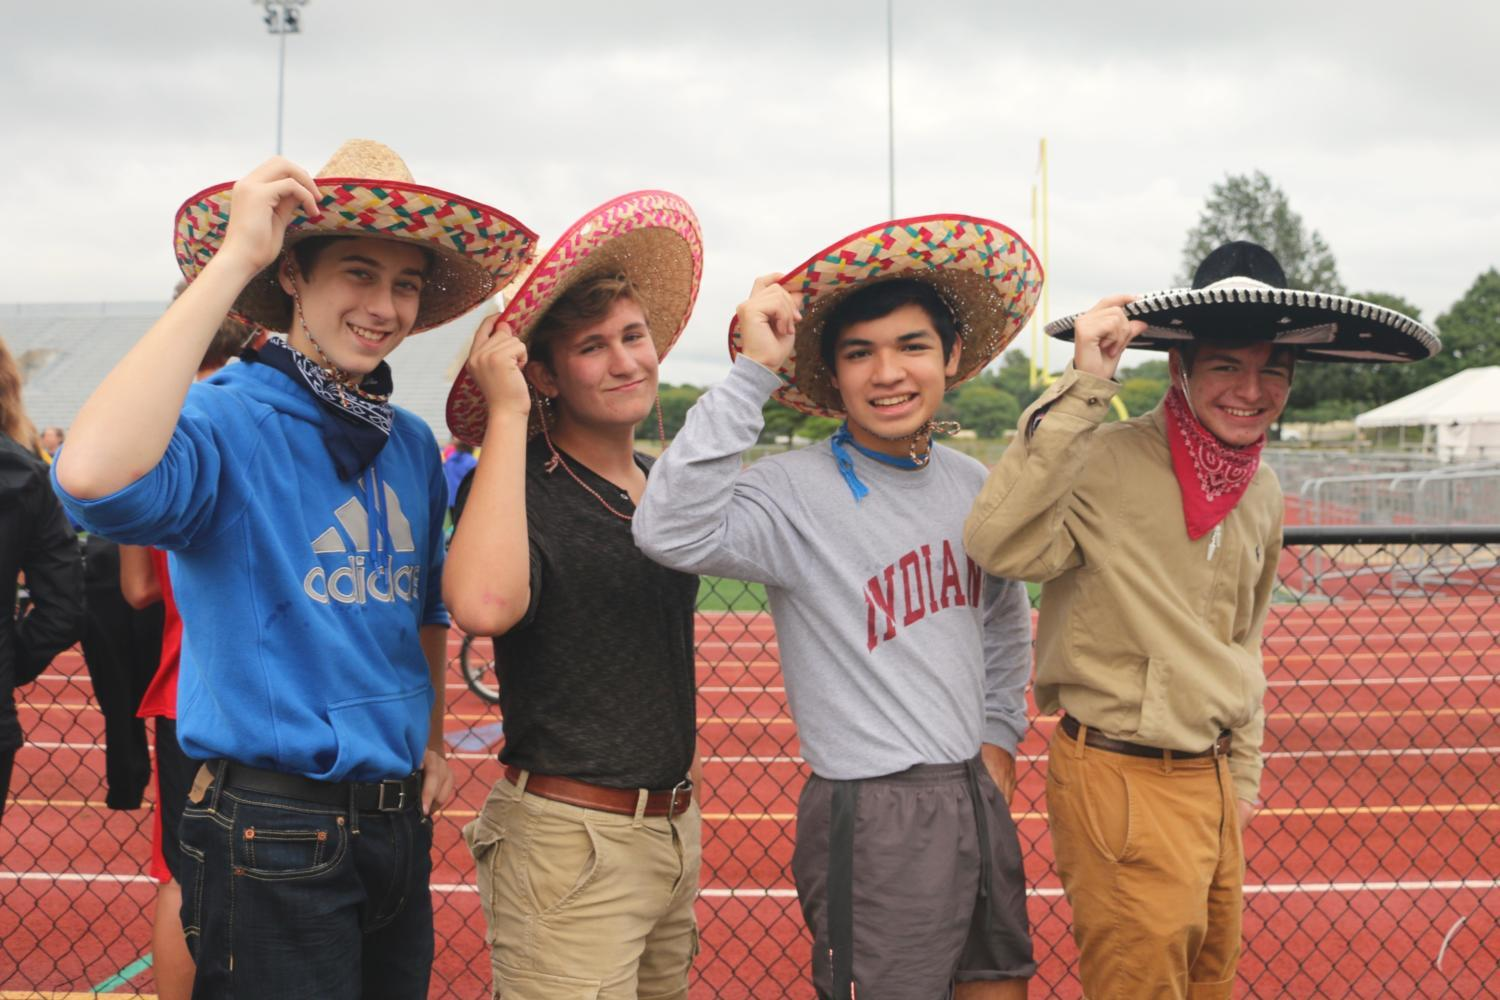 (Left to right) Noah Steiner, Oscar Cronin, Luke Belcher and Lawrence Arceneux pose for the camera on September 13th, at the Carmel High School Stadium. This team of sophomores has been training hard and are prepared for the trike race preliminaries. The team, The Three Amigos, concluded that they are all very excited for the thrill of competing in the trike race.